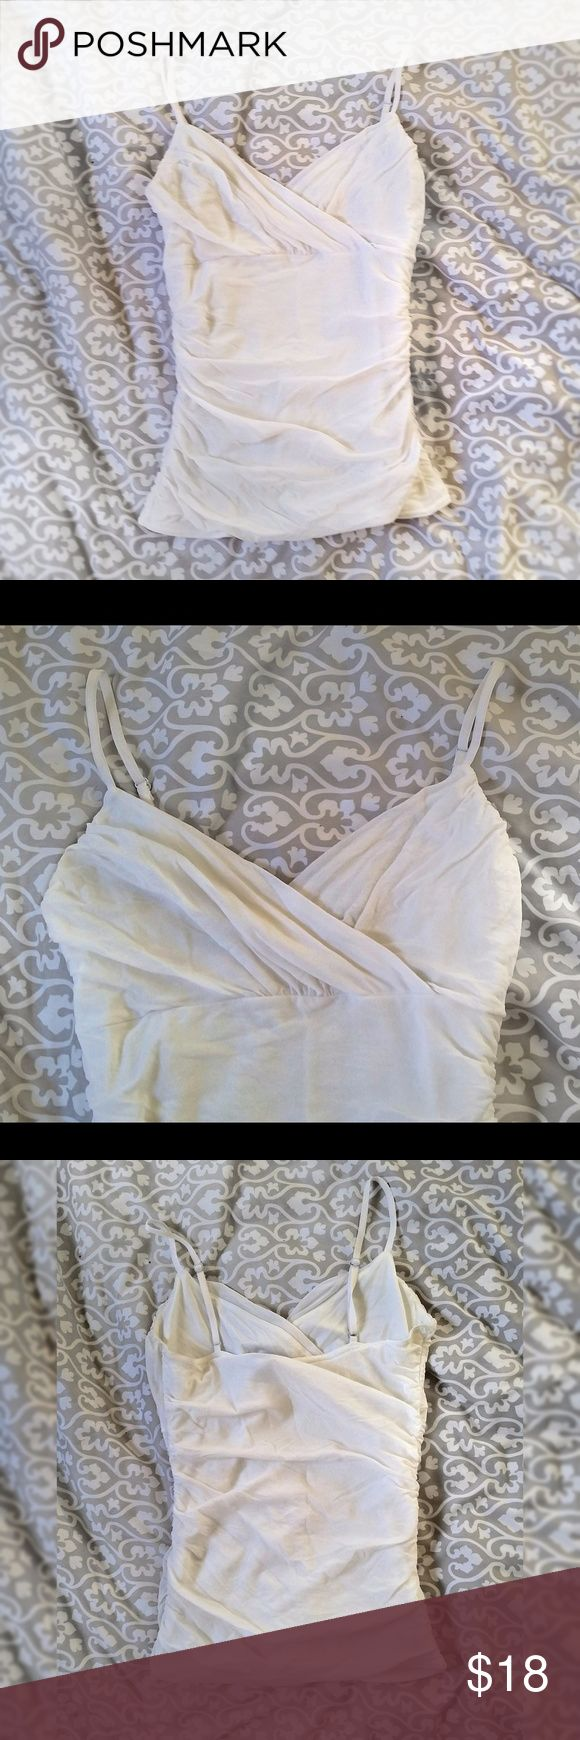 White Chiffon Camisole Beautiful, light cream colored v-neck, gathered tank top. Very elegantly sexy. Adjustable straps.Excellent condition apart from tag coming off and some paint coming off metal pieces (pictured).   Additional keywords: creme off-white offwhite eggshell blouse cami spaghetti strap sleeveless elegant feminine form-fitting fitted form fitting formfitting slim flattering romantic dressy date dinner party club night evening day transitional versatile H&M Tops Camisoles